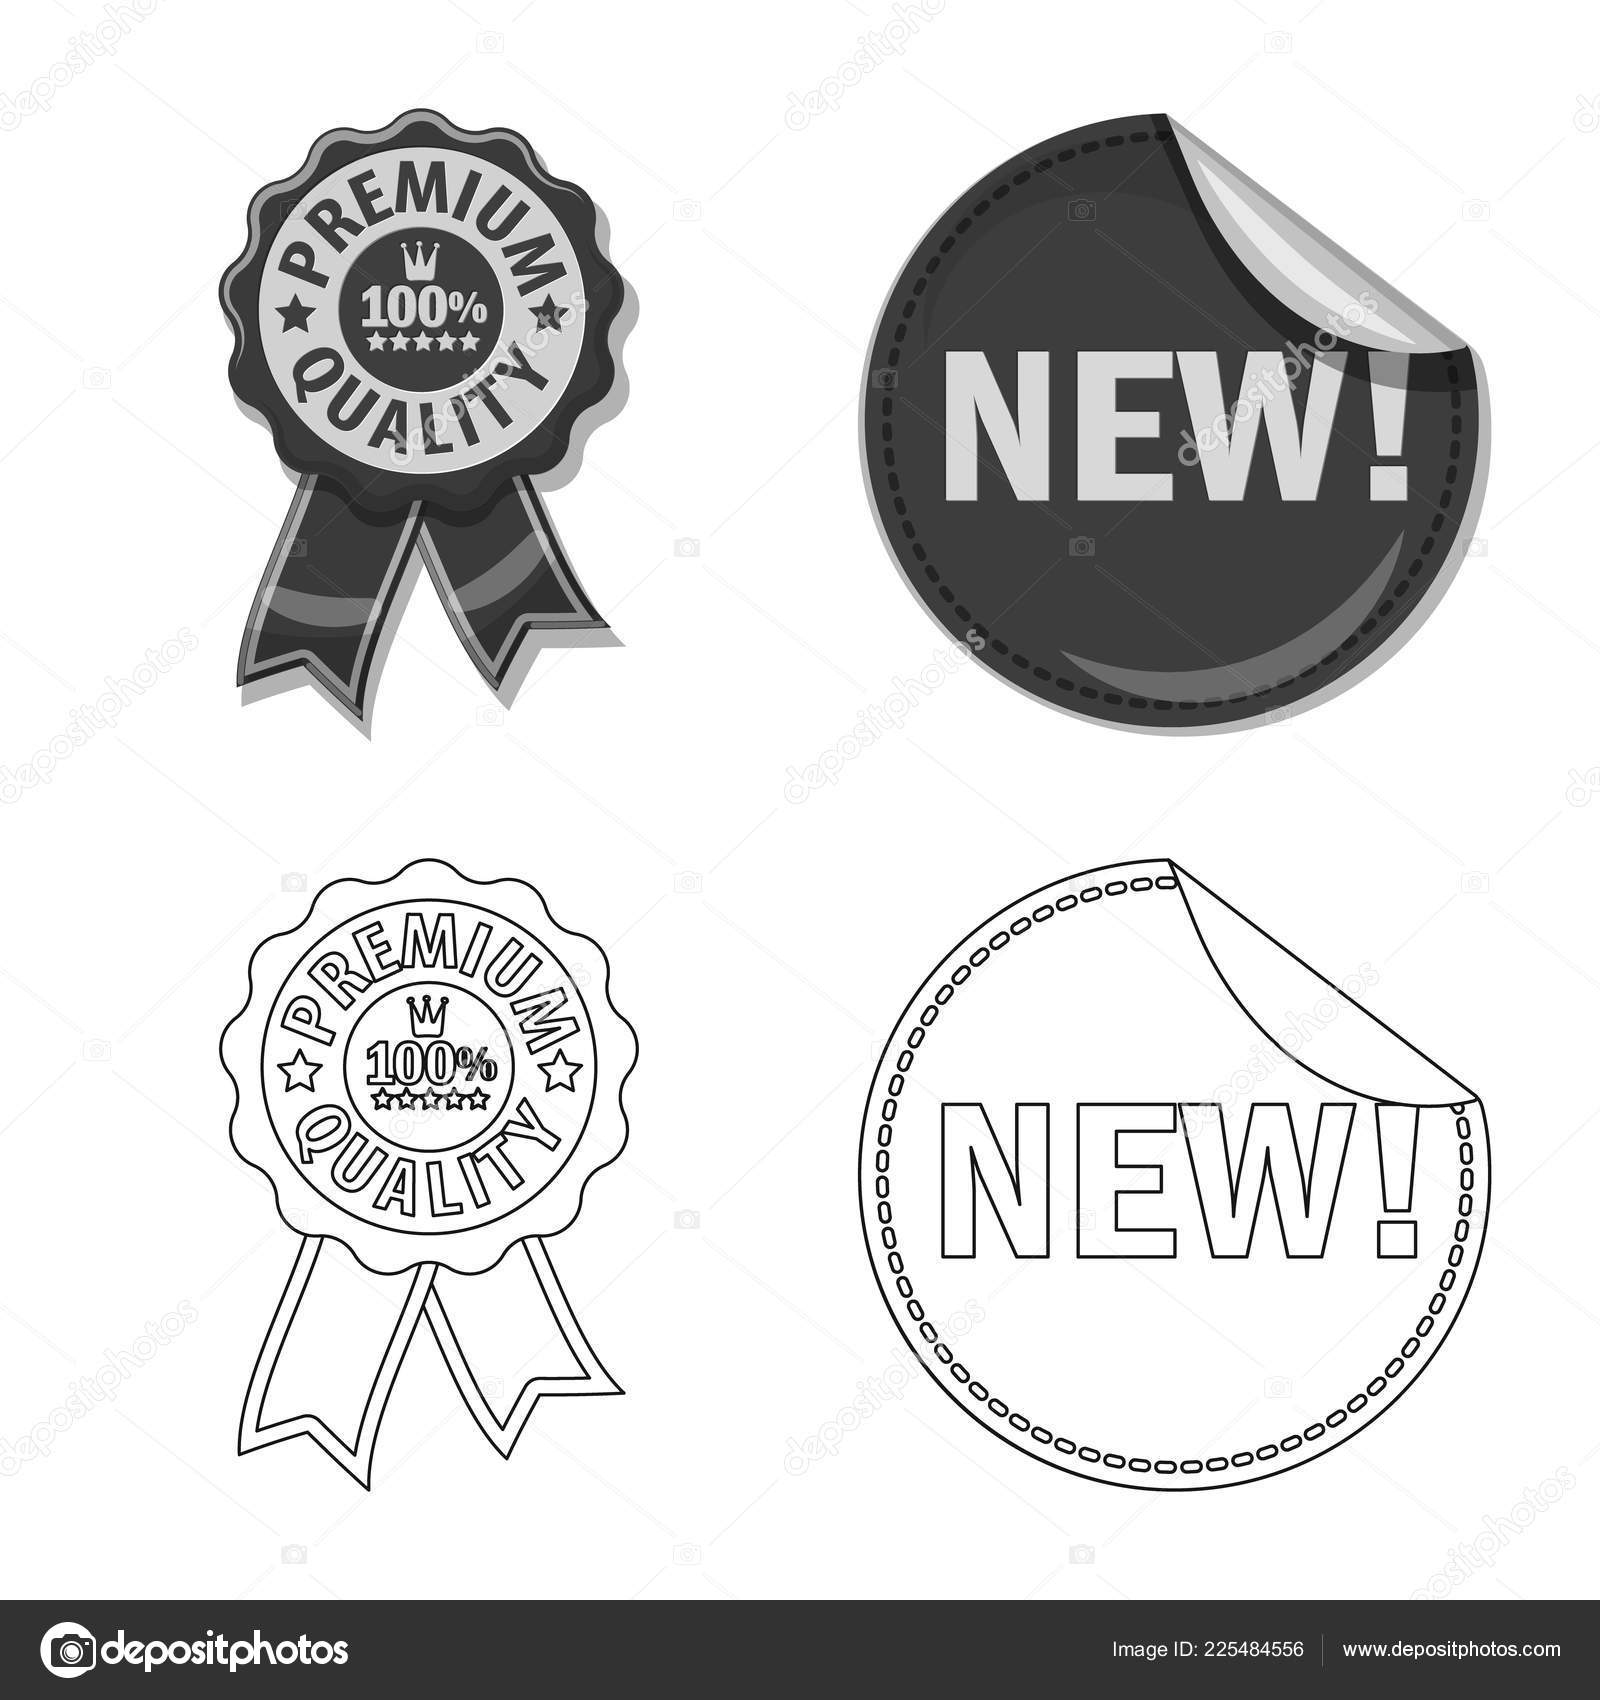 Vector Illustration Of Emblem And Badge Icon Set Of Emblem And